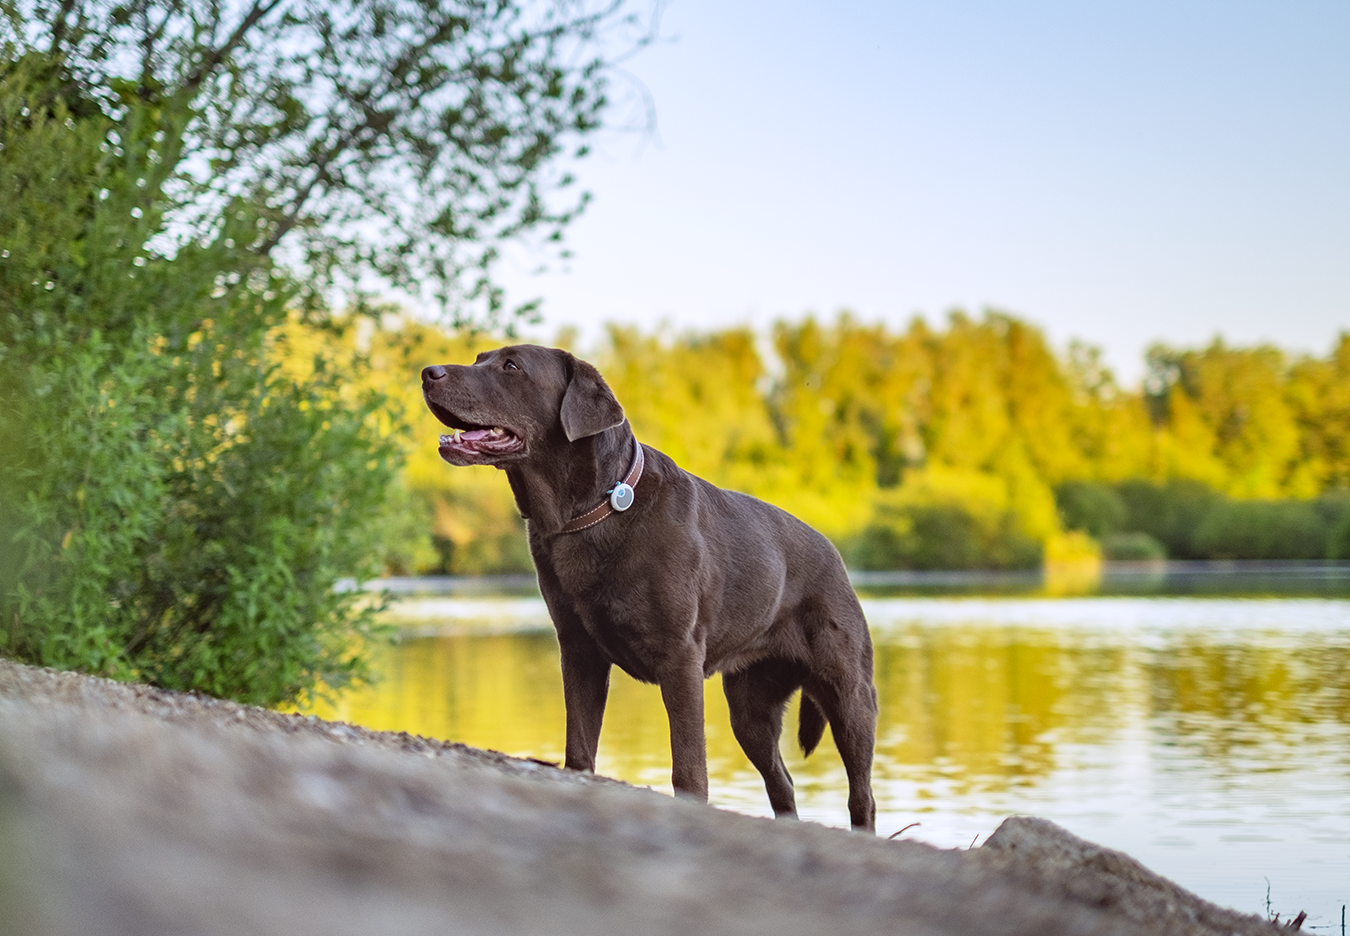 Chocolate Labrador wears Animo Activity Tracker and Behaviour Monitor from Sure PetCare during walk